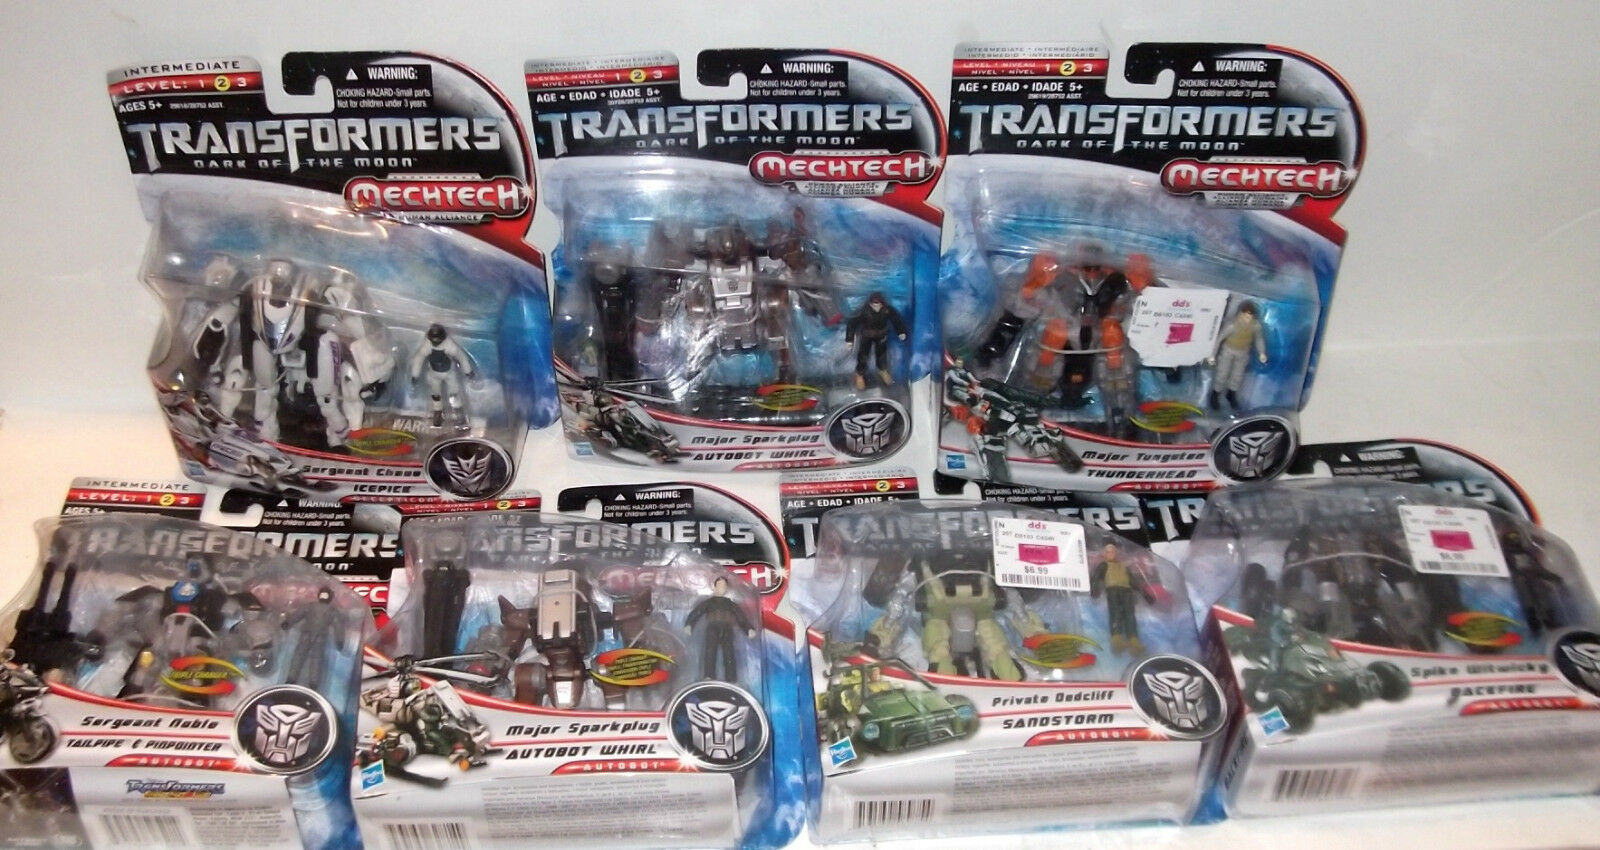 Transformers Mechtech LOT OF 6 HARD-TO-FIND Figures - all SEALED noble sparkplug